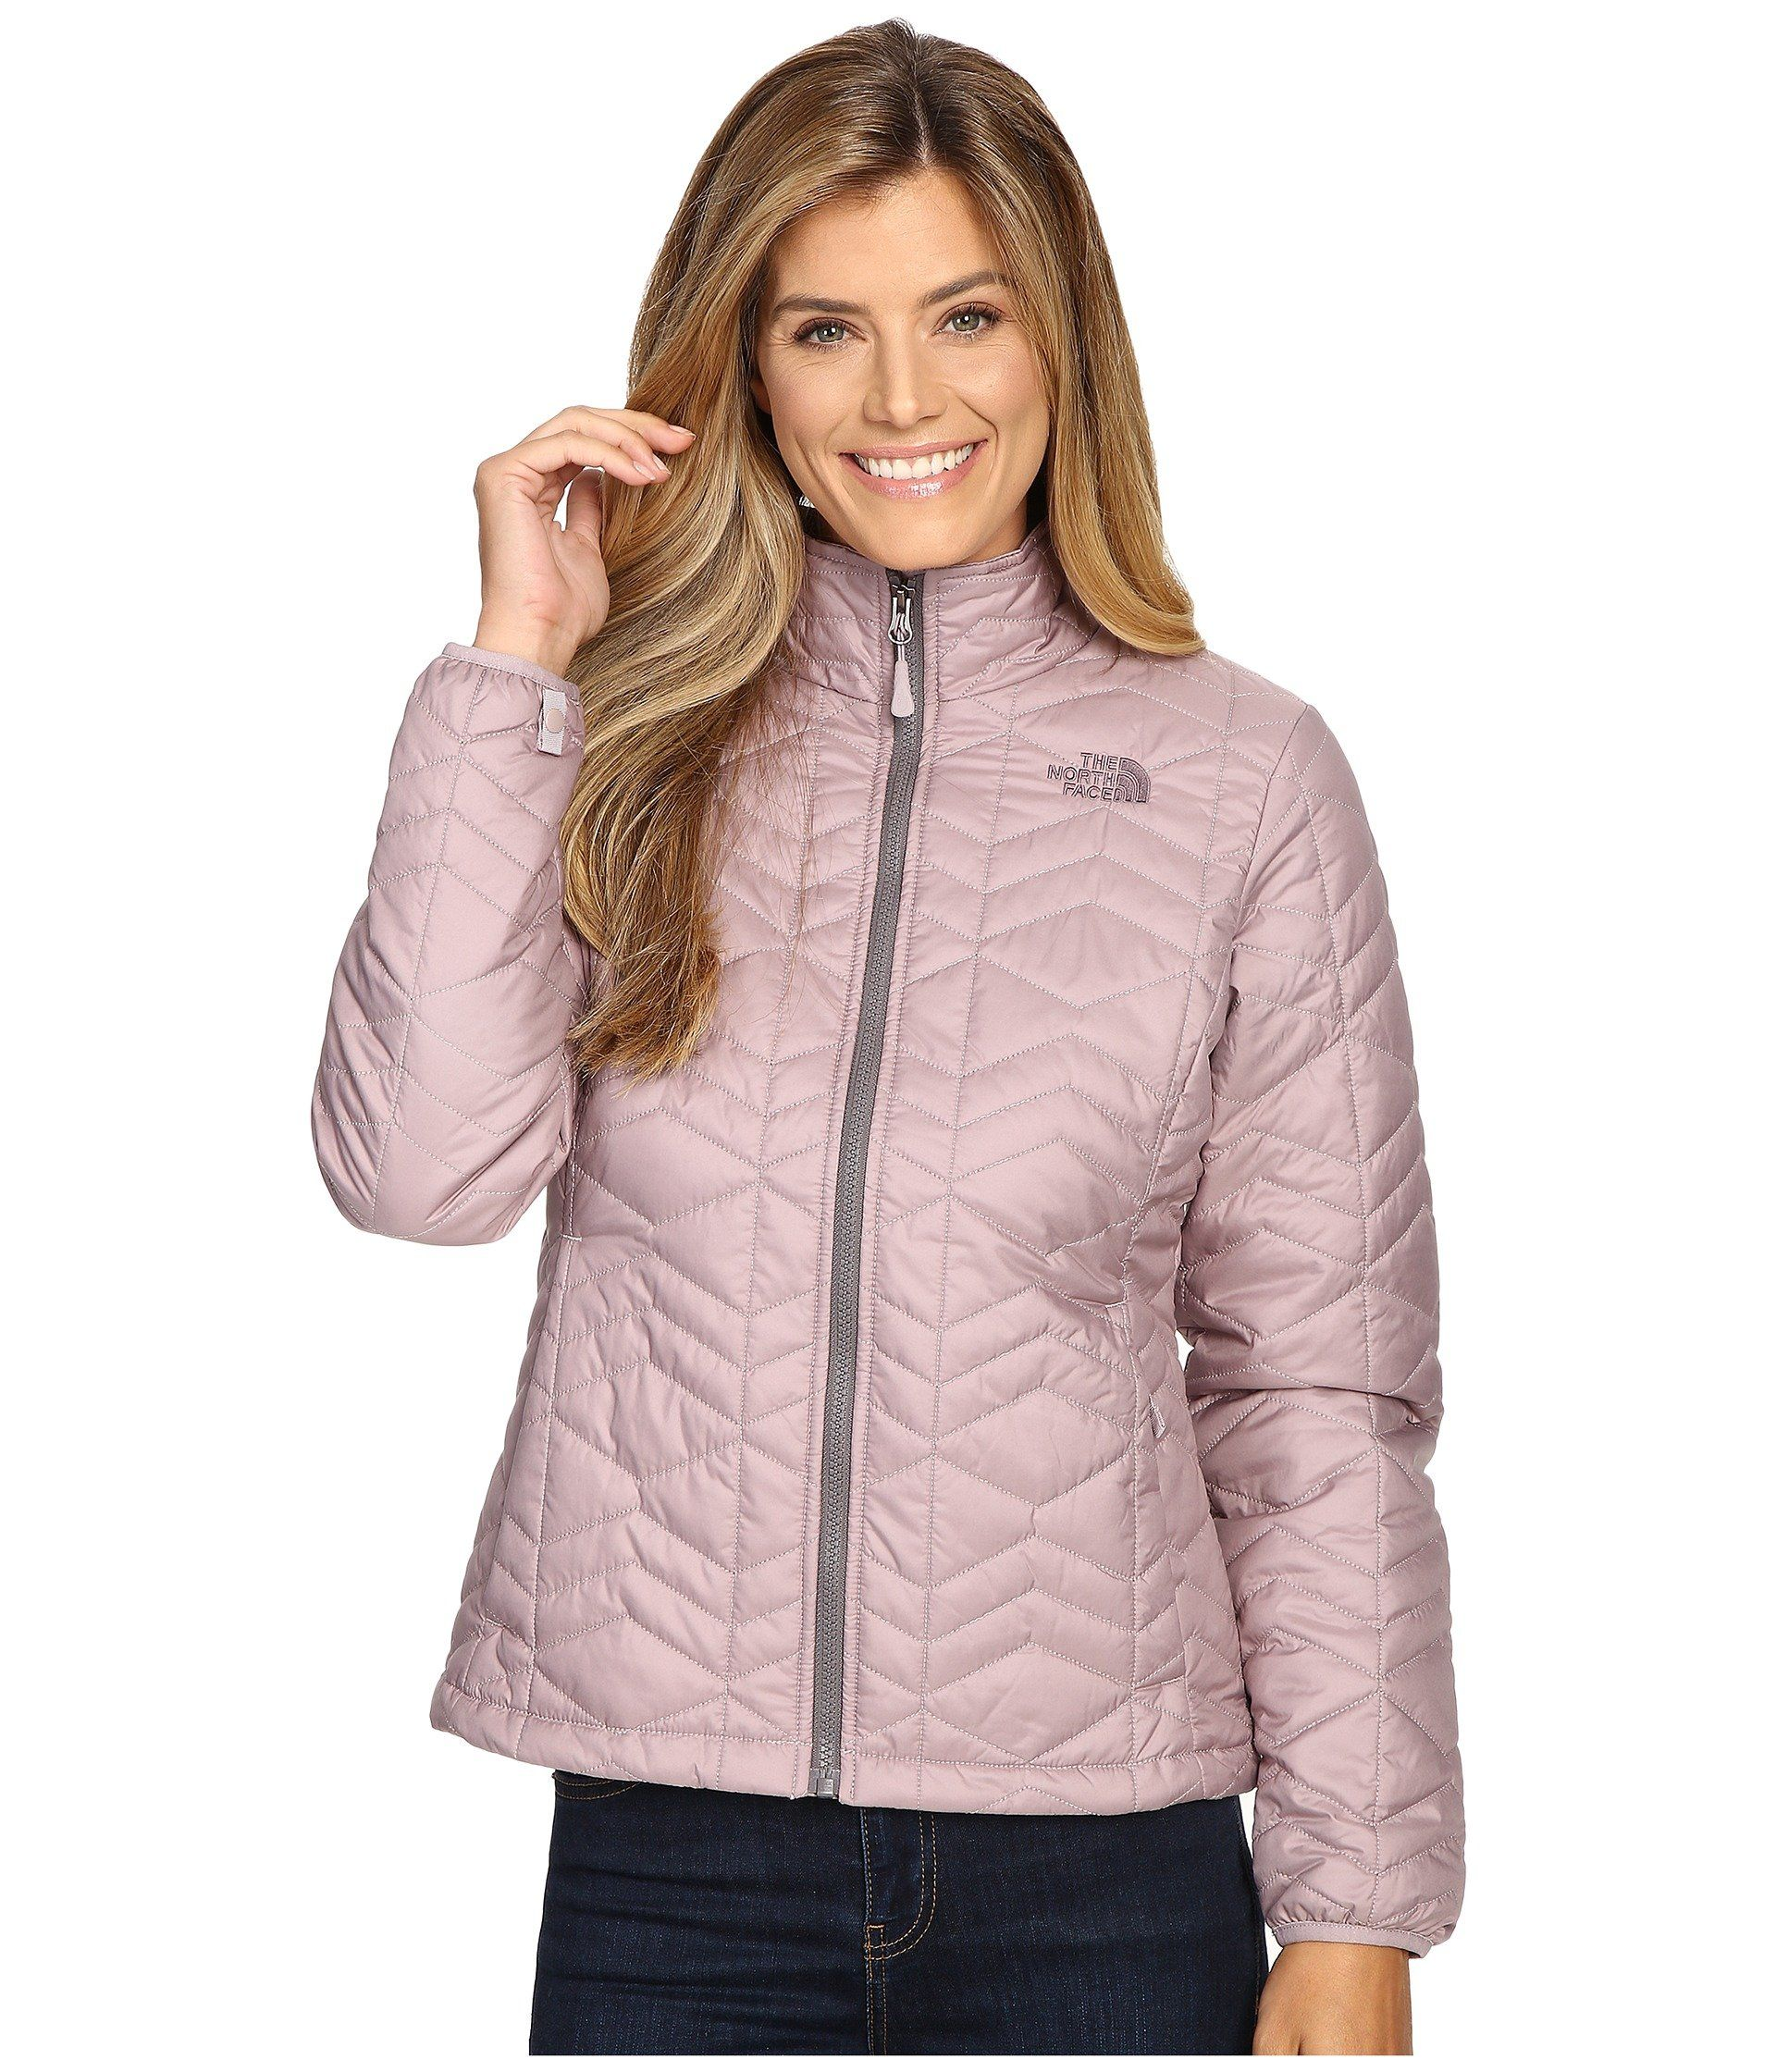 The North Face Bombay Jacket Women S X Small Quail Grey 8326615 Top Womens Outdoor Clothing Jackets For Women Women [ 2240 x 1920 Pixel ]